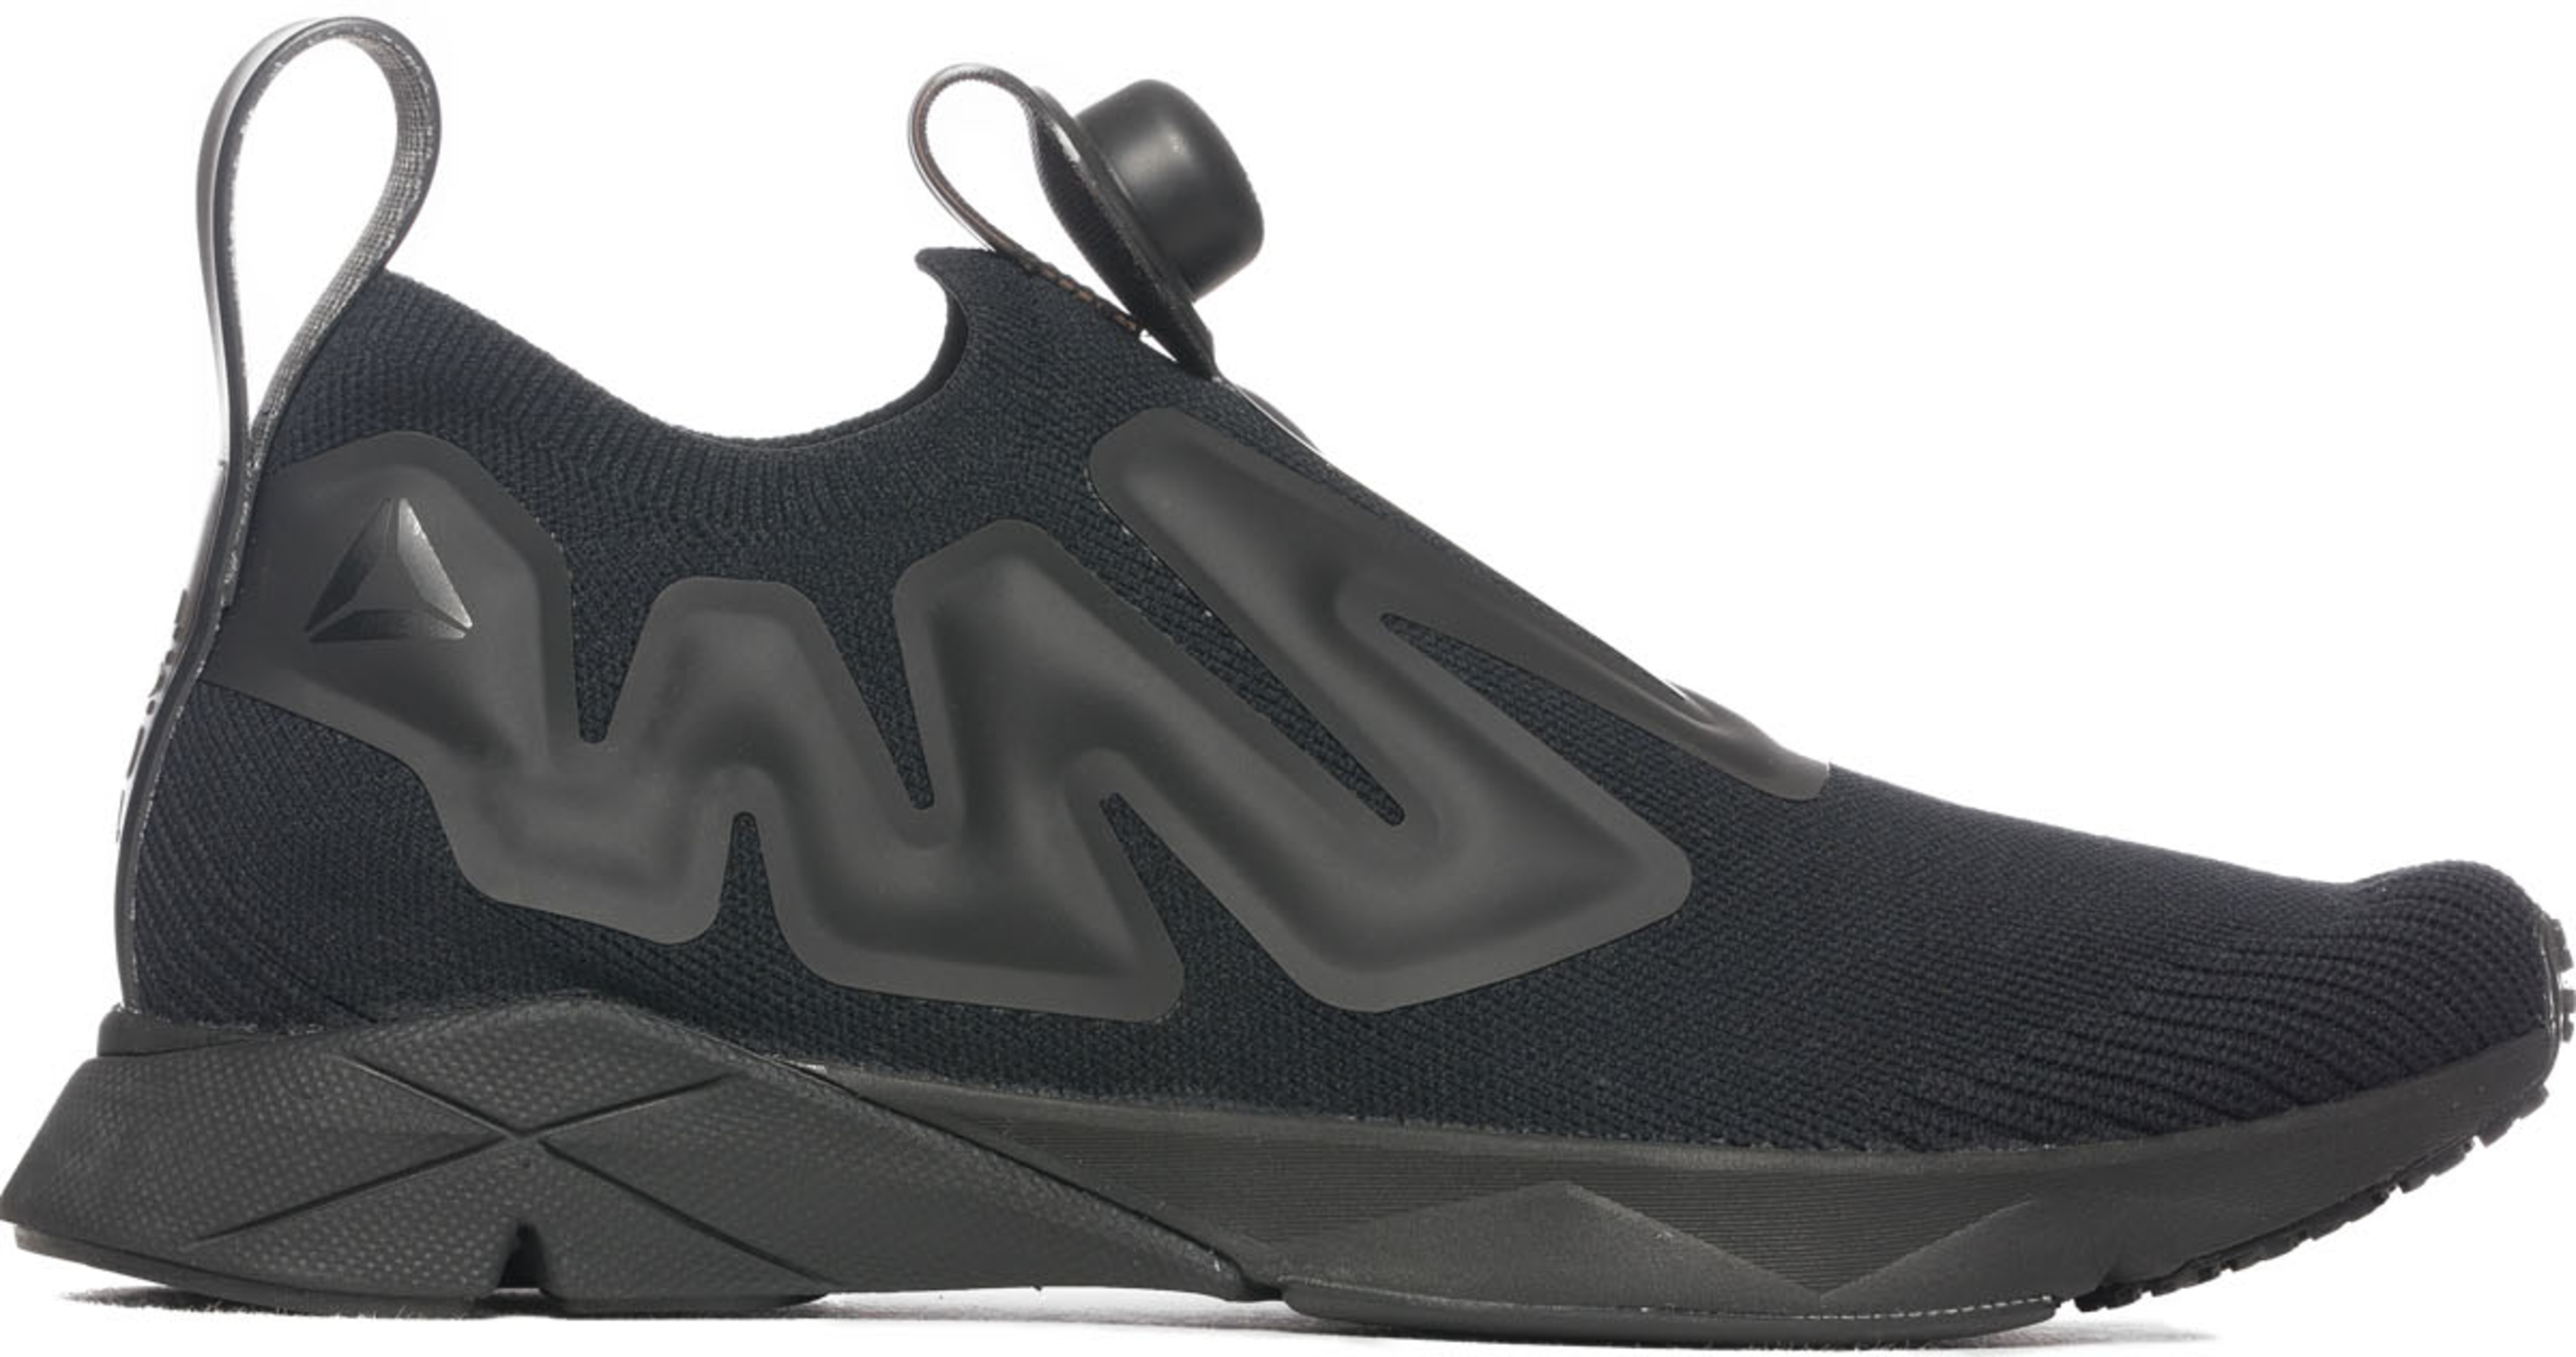 c59d051c Reebok: Pump Supreme Ultraknit - Black/Black | influenceu